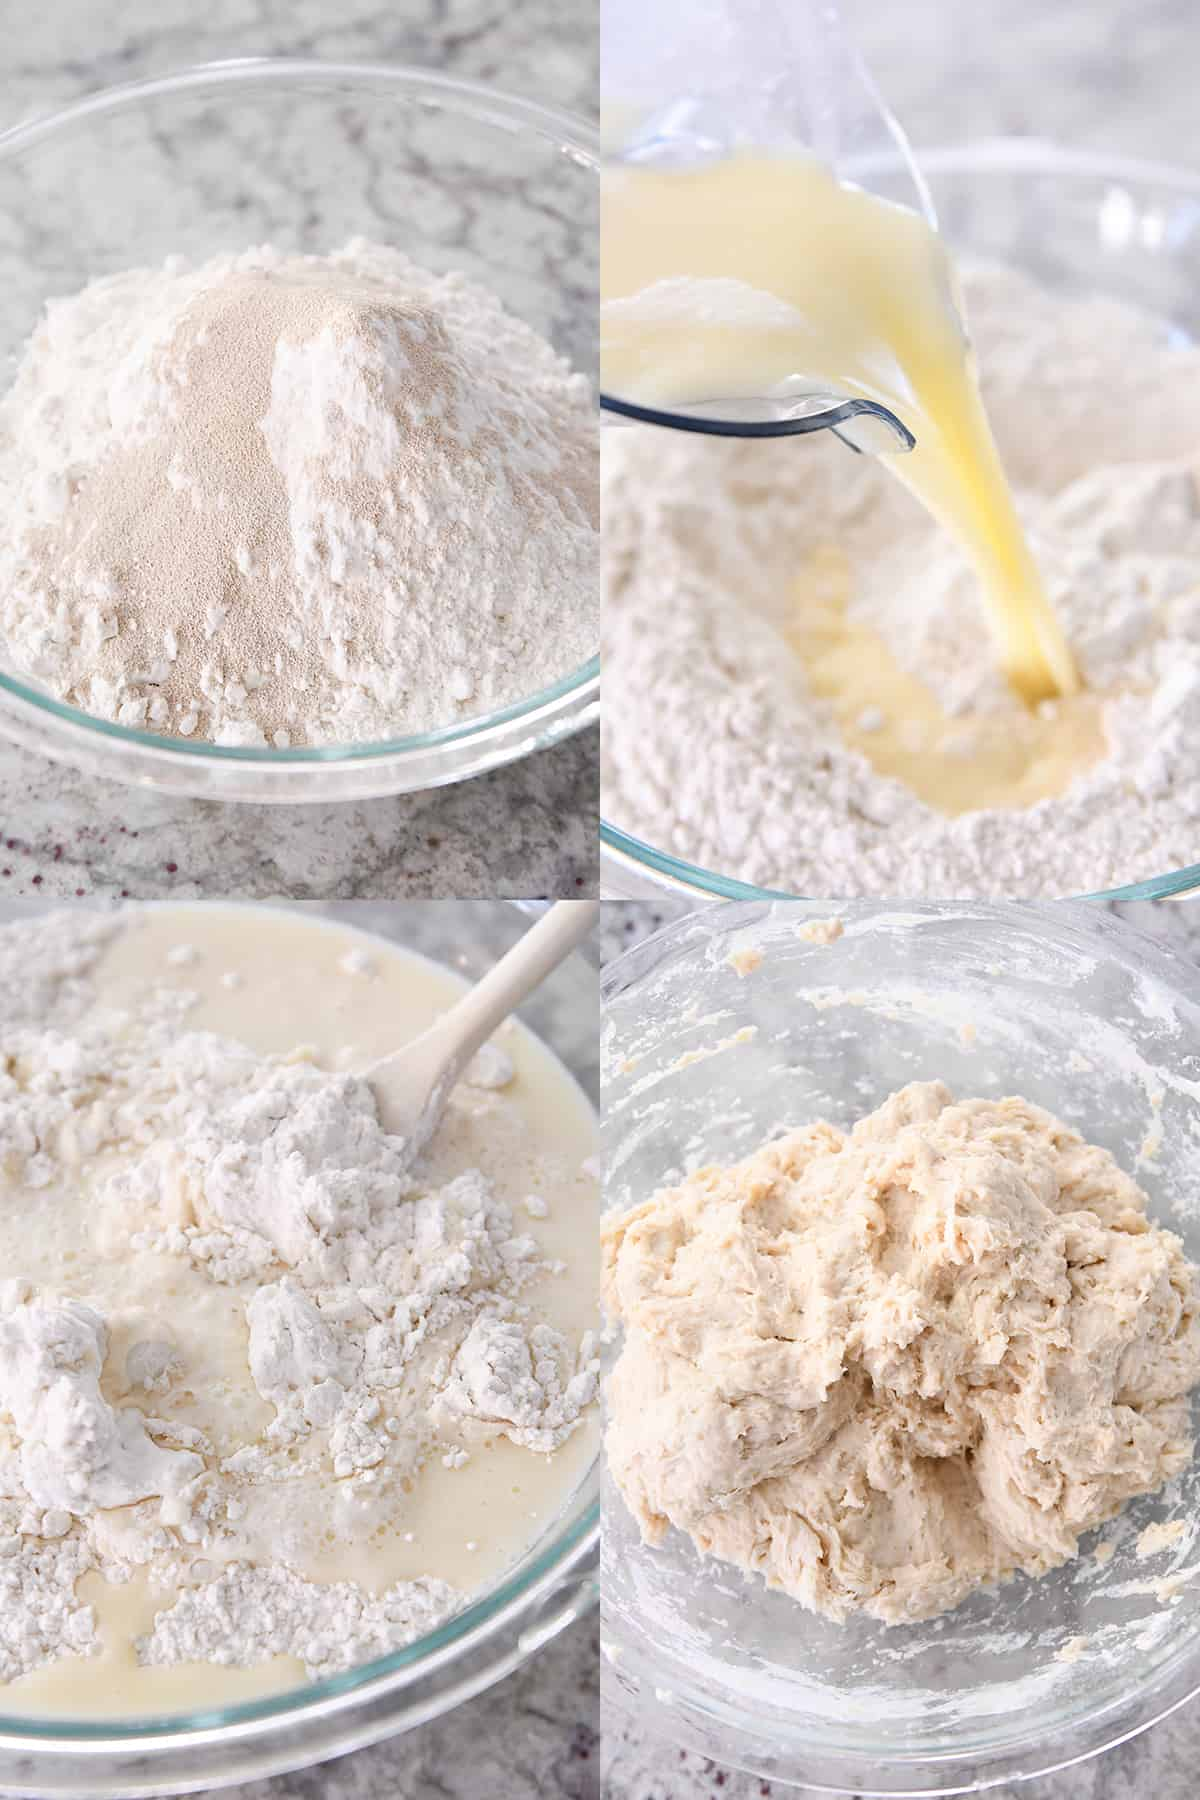 flour and yeast in glass bowl, pouring water and butter over flour, mixing ingredients to form soft dough